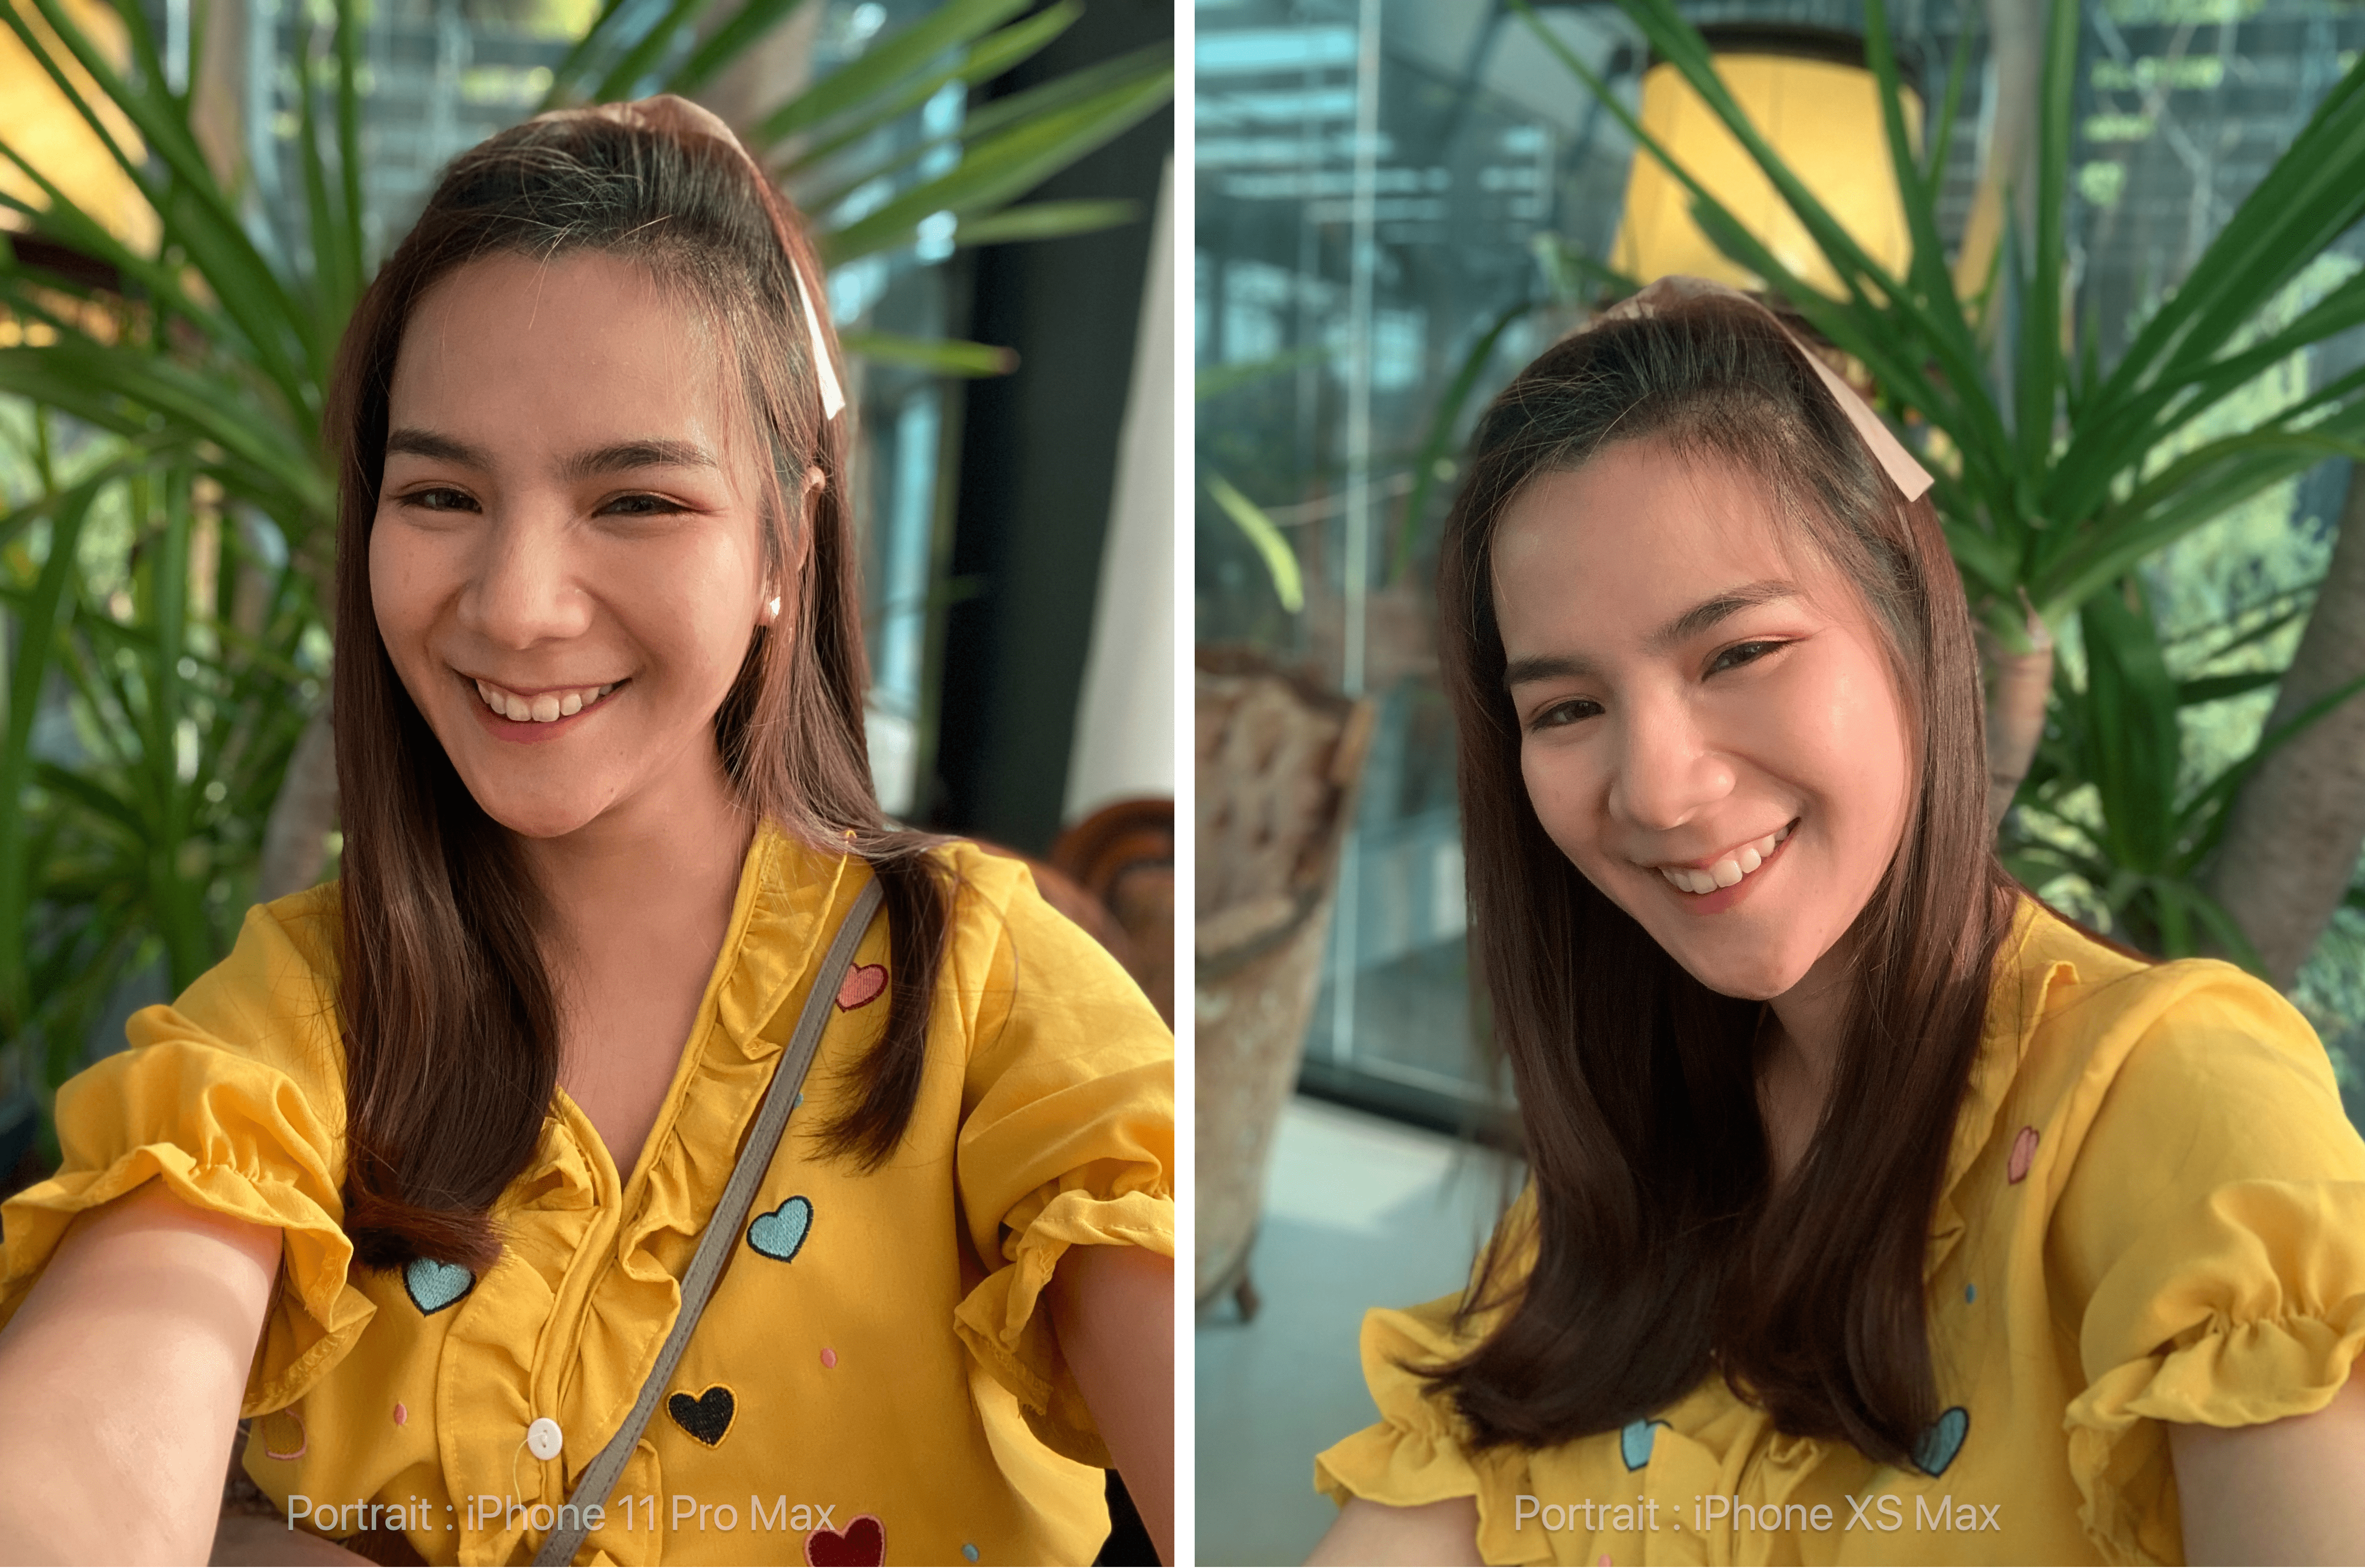 Iphone 11 Pro Max And Iphone Xs Max Sefie Photo Compare Img 6